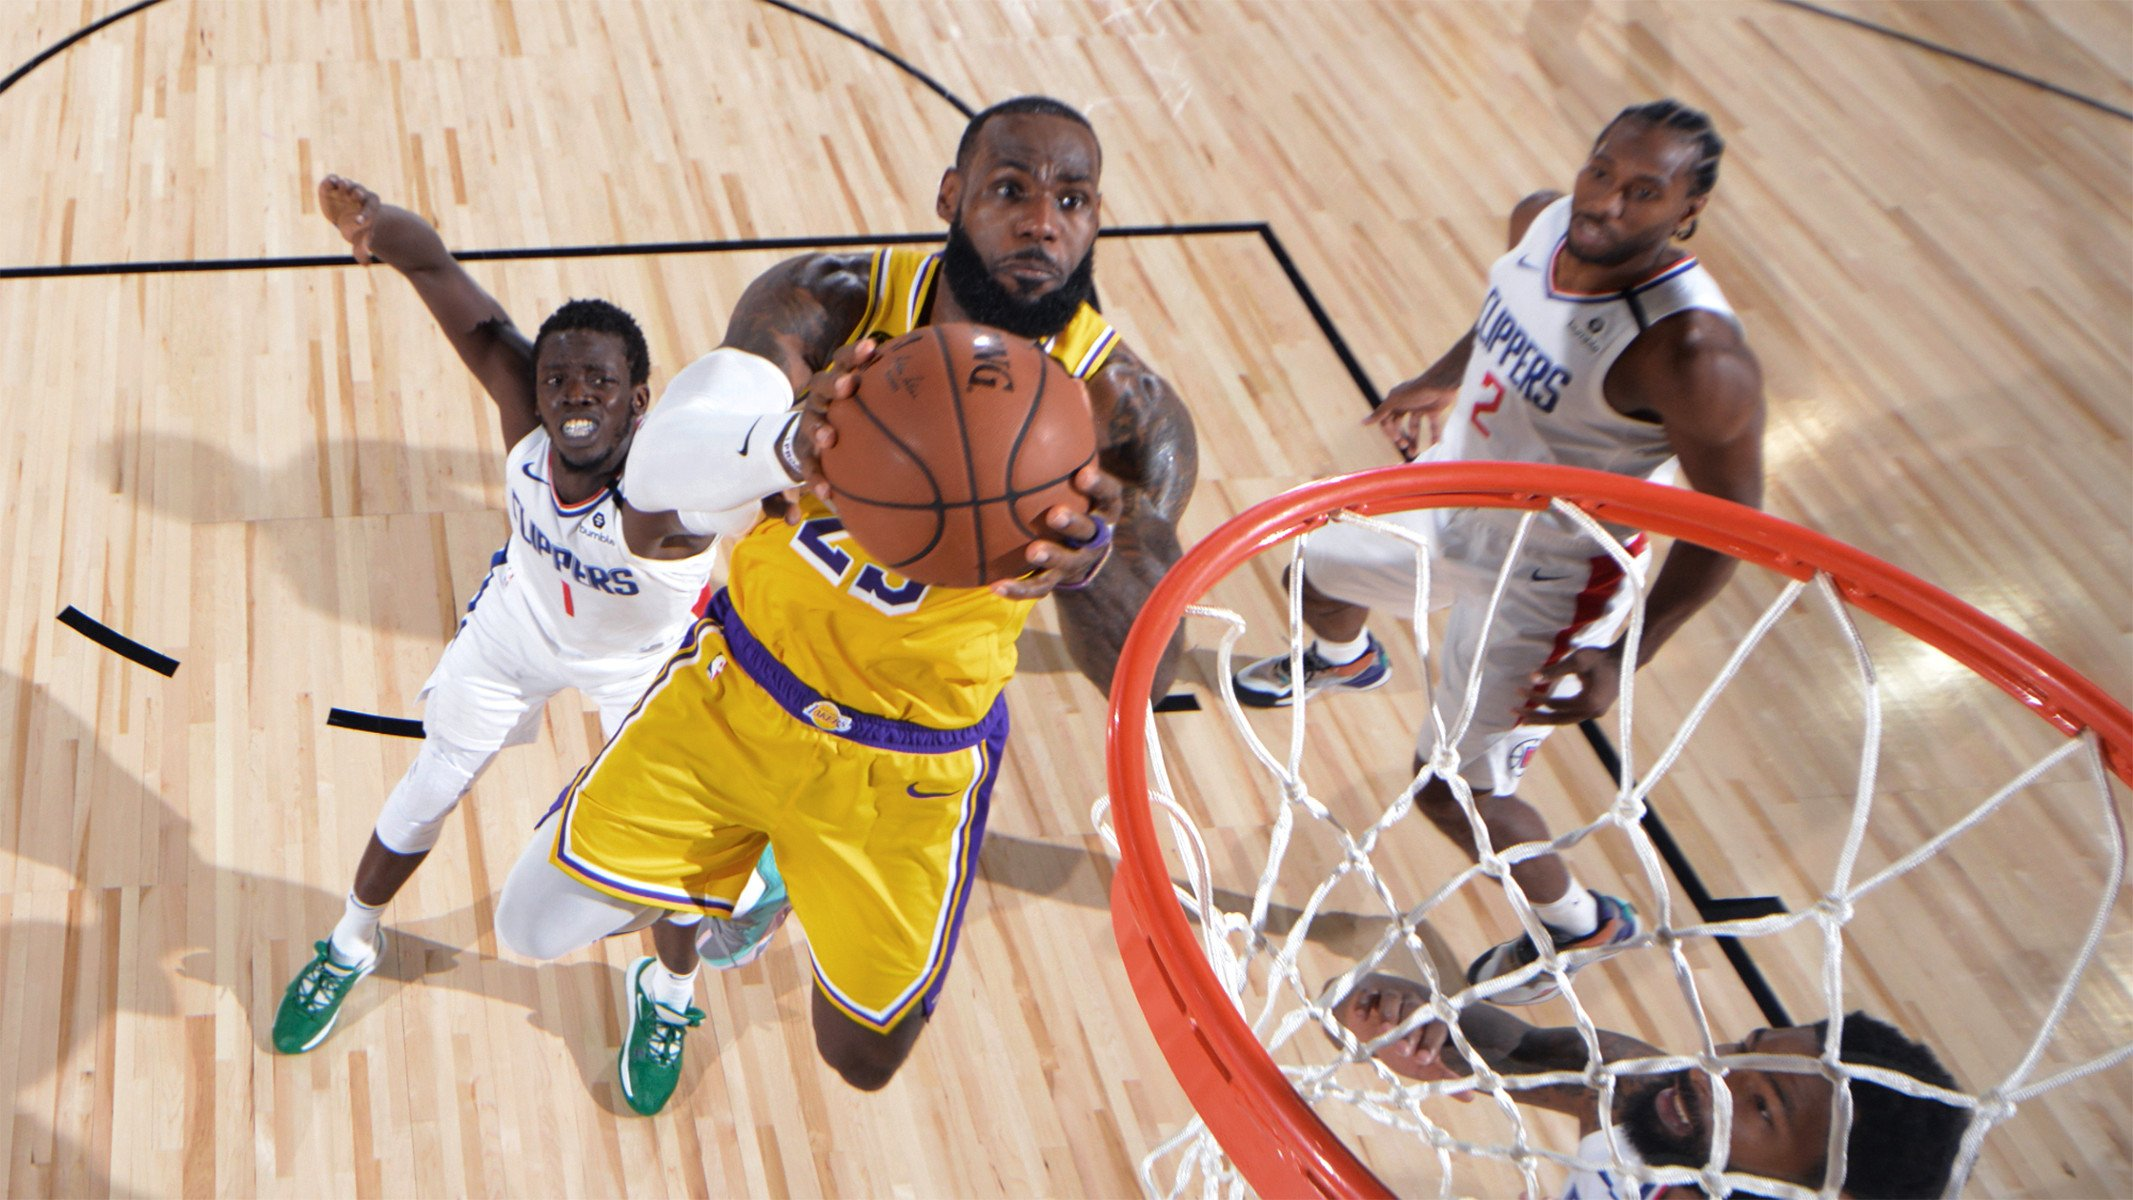 Lakers Vs Clippers: LeBron James Bikin 2 Aksi Dramatis - JPNN.com